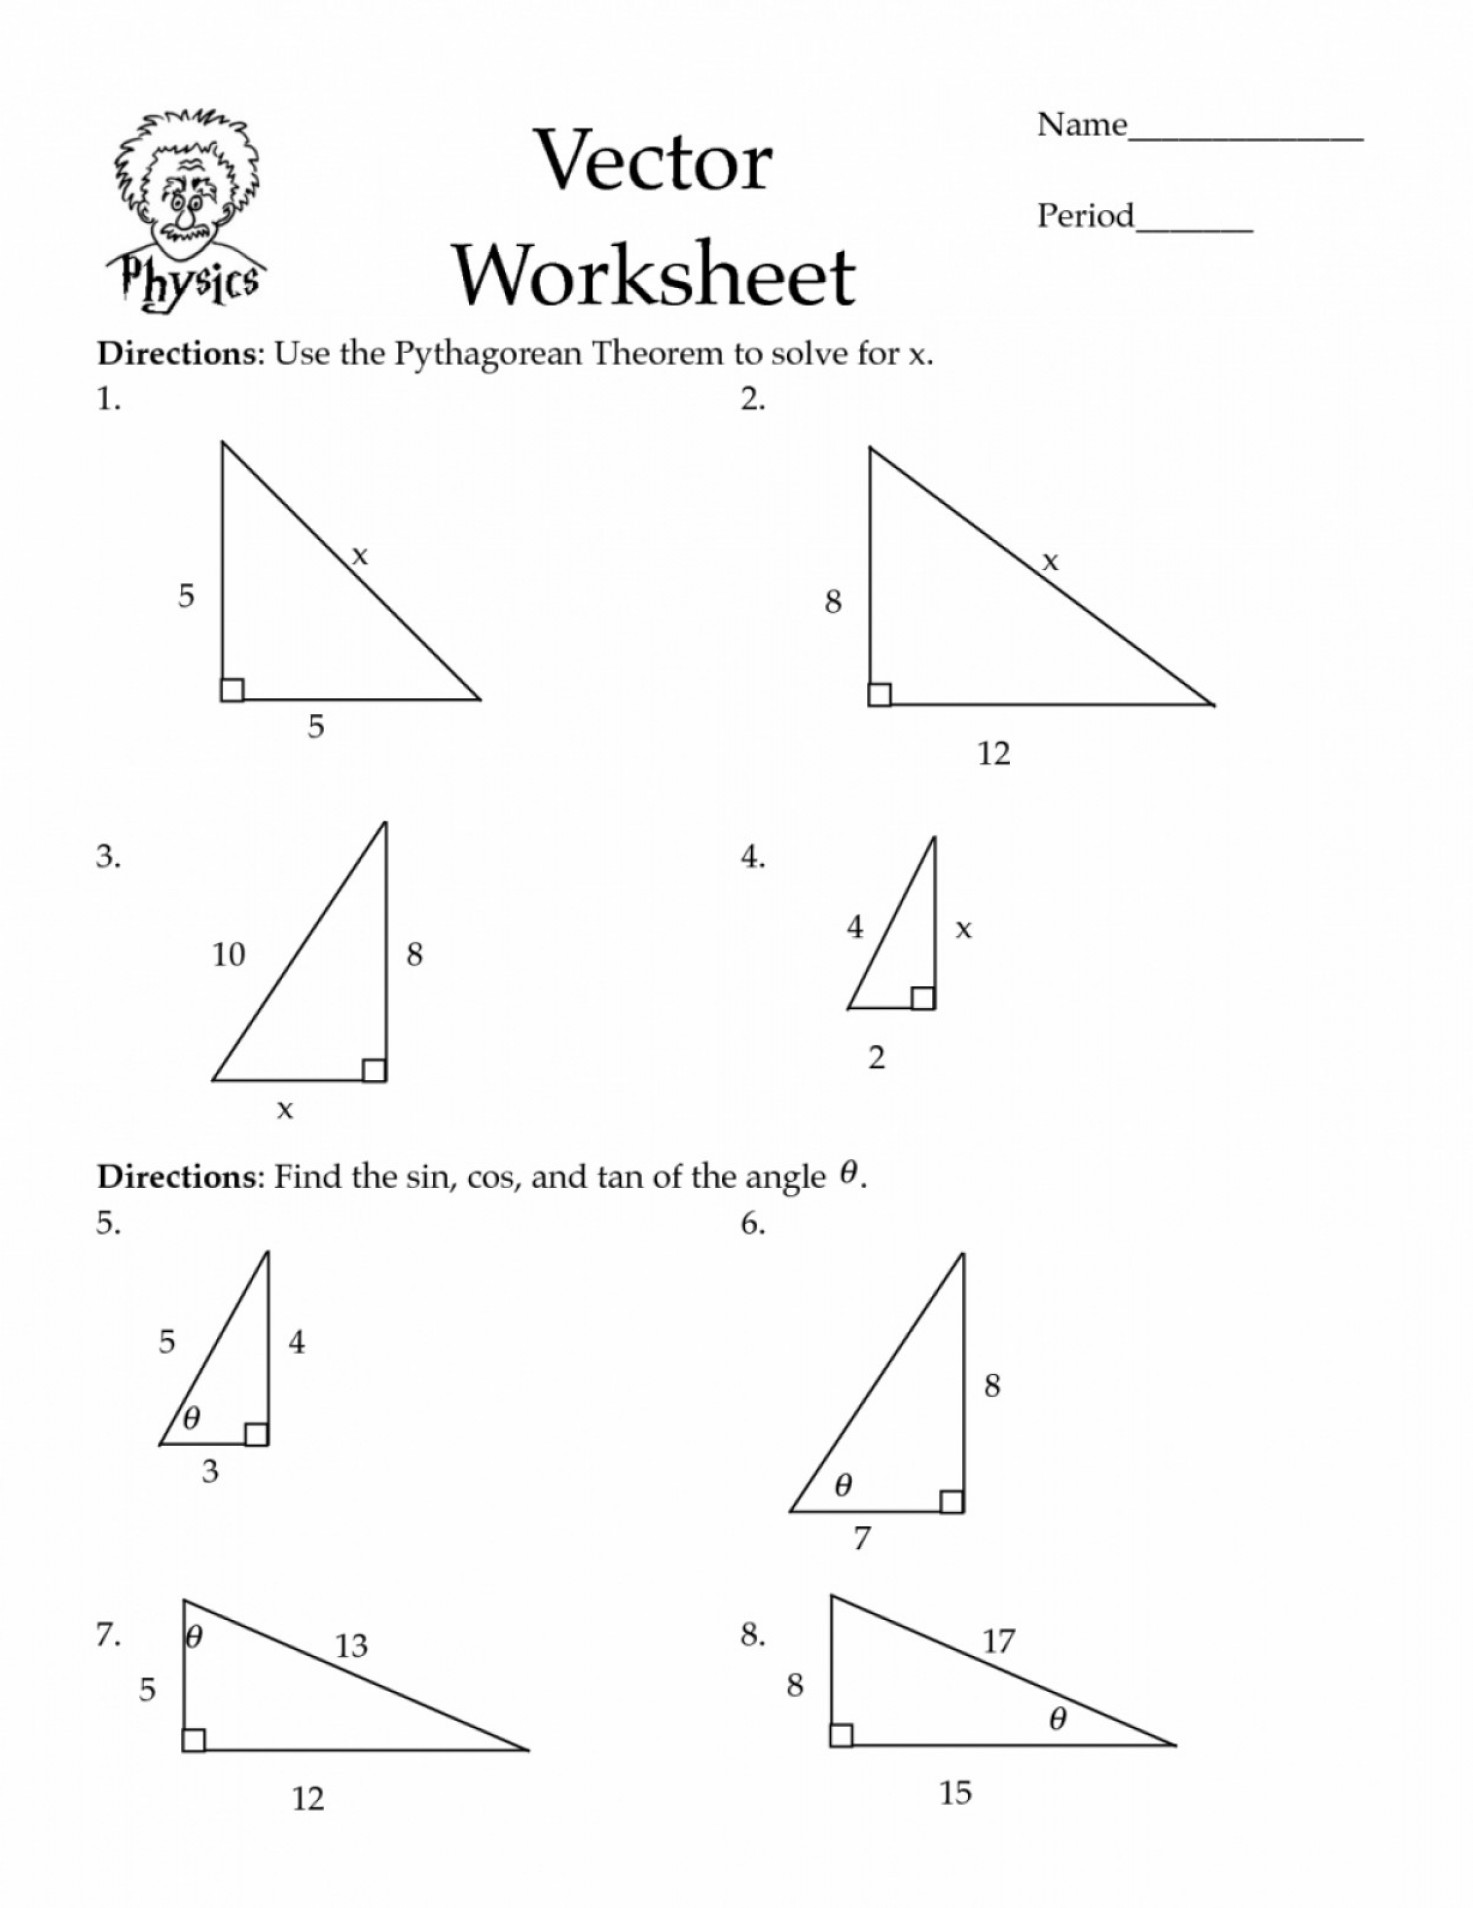 Mosquito Vector Worksheet: Pythagorean Theorem Worksheets Cos Law Worksheet Pdf Math